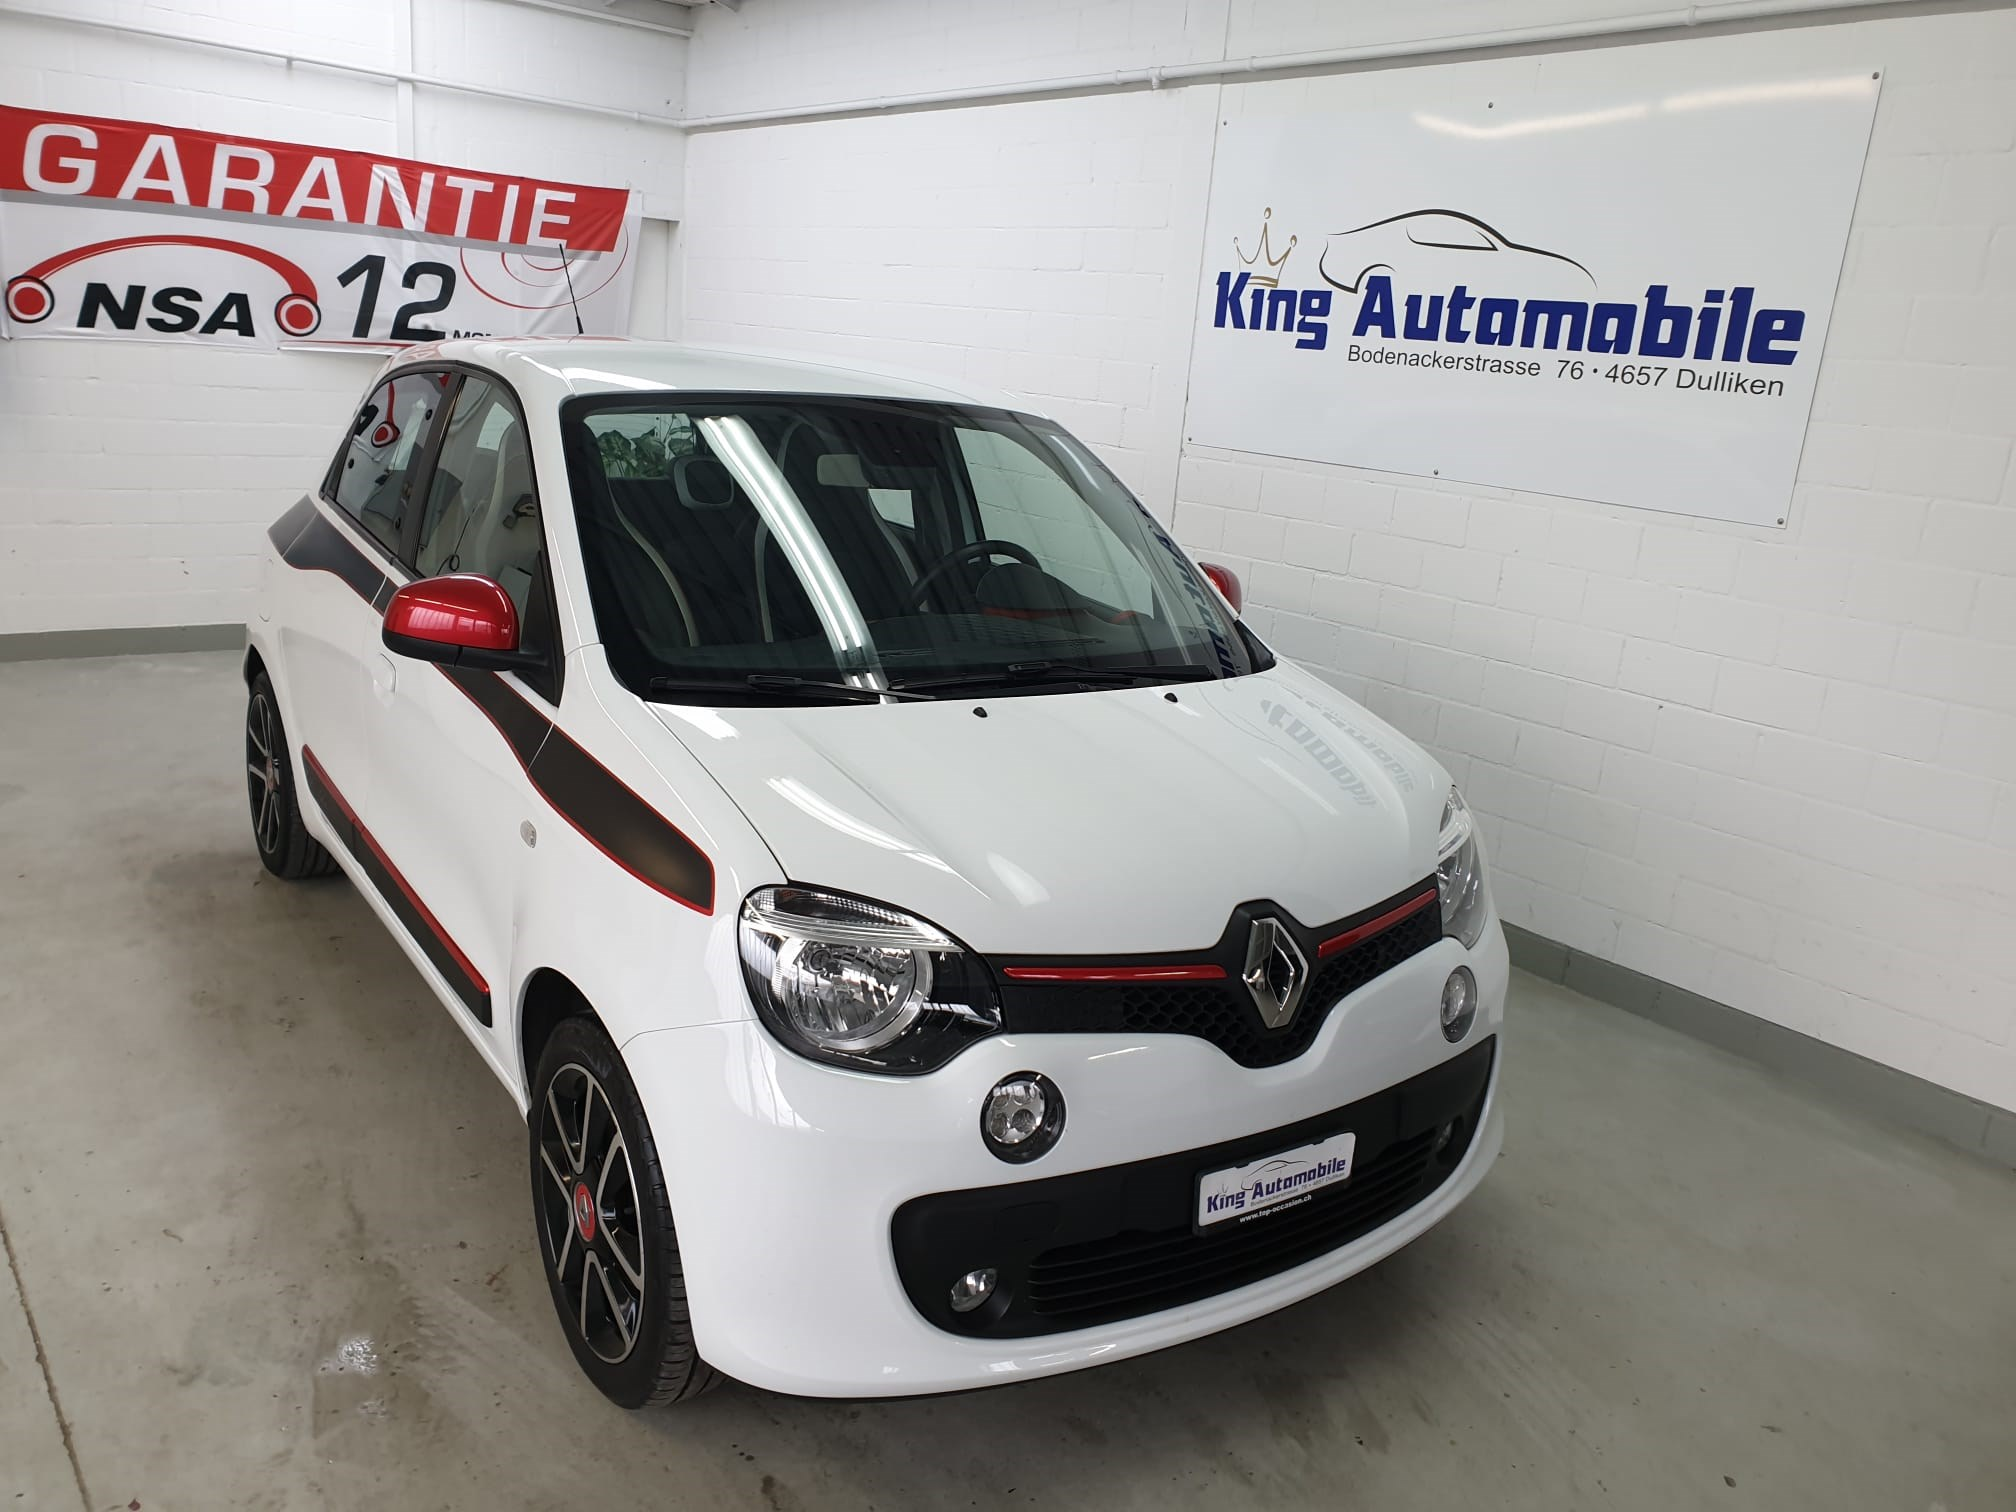 Buy Used Car Sedan Renault Twingo 0 9 Intens 135000 Km At 6900 Chf On Carforyou Ch